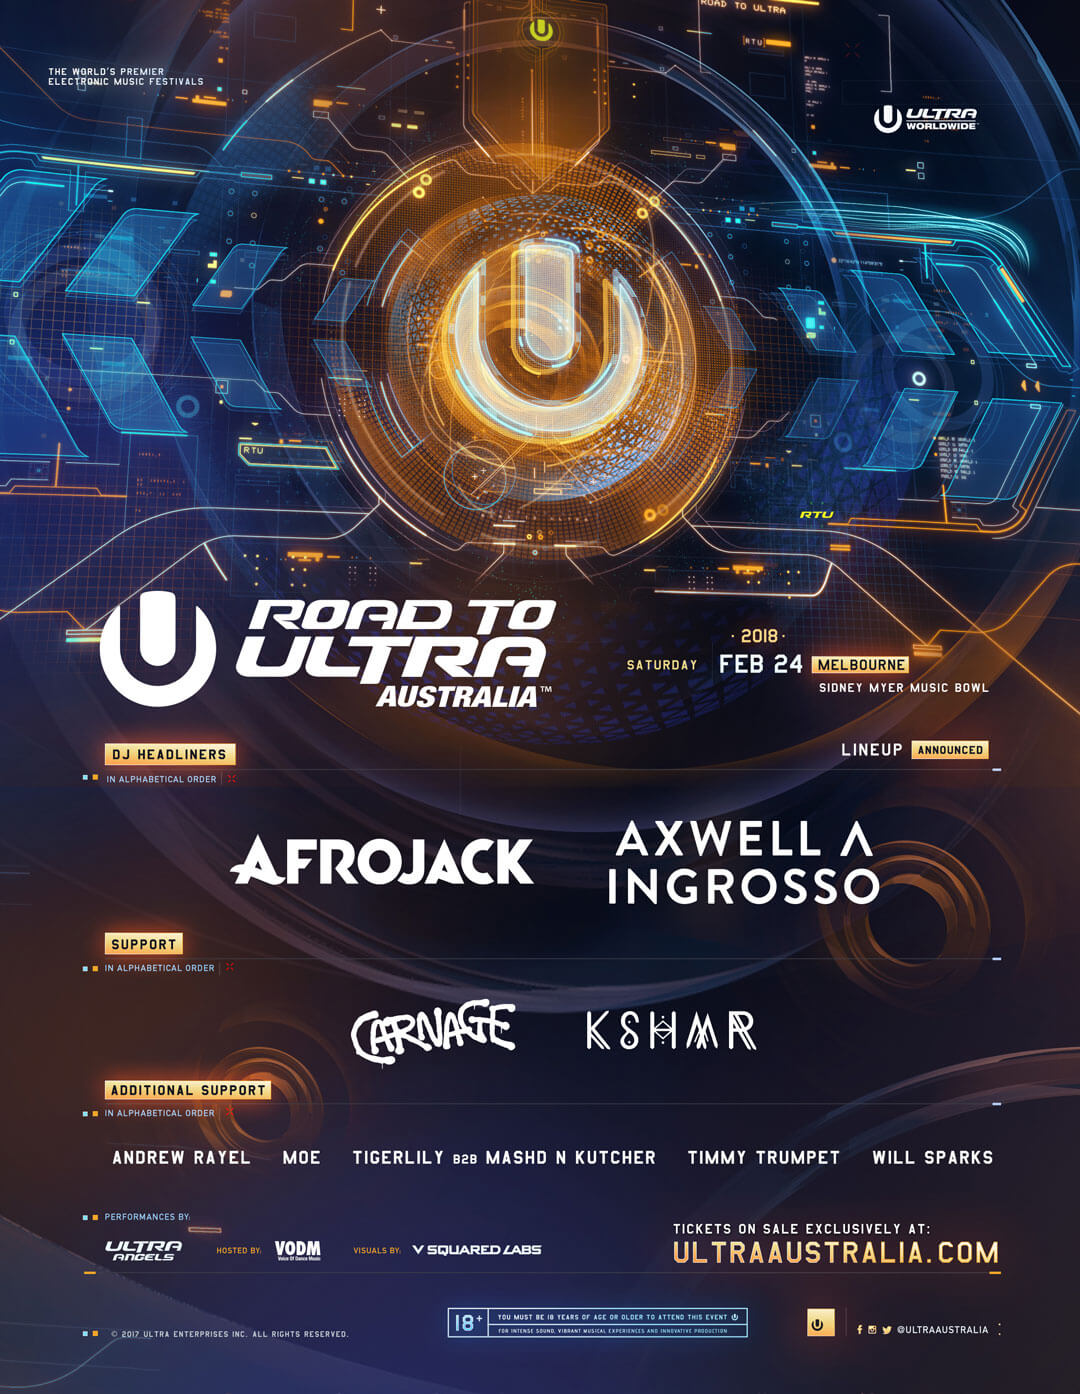 Afrojack and Axwell Λ Ingrosso To Headline Inaugural Road to ULTRA Australia